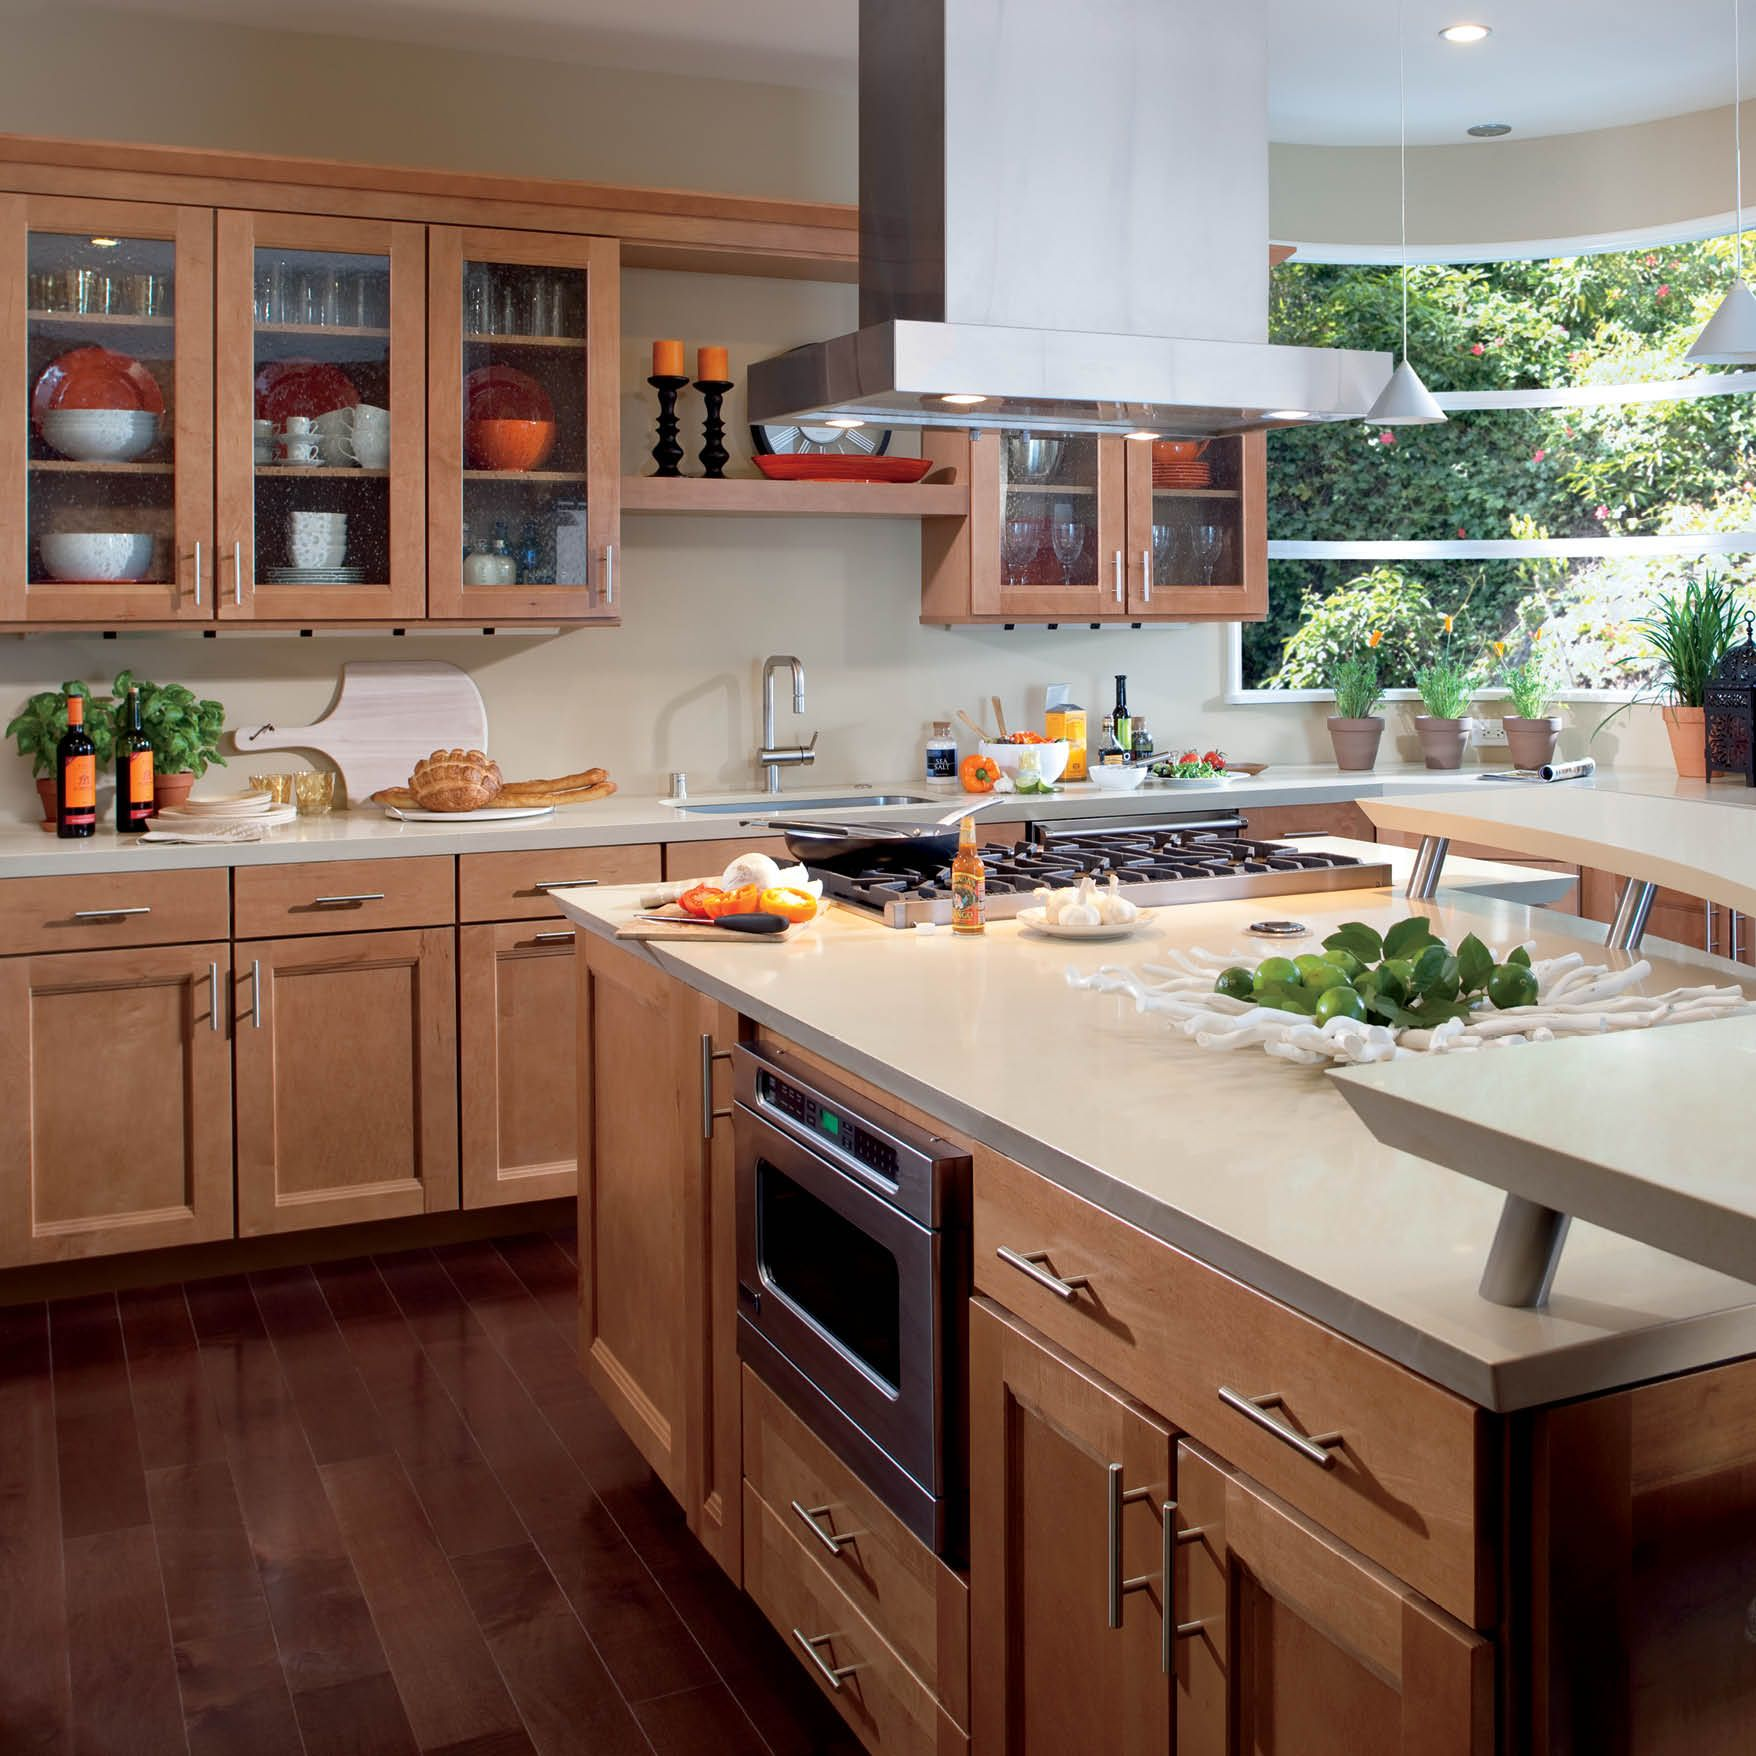 selecting wood floors in 2020 kitchen remodel kitchen on home depot paint sales this week id=99589